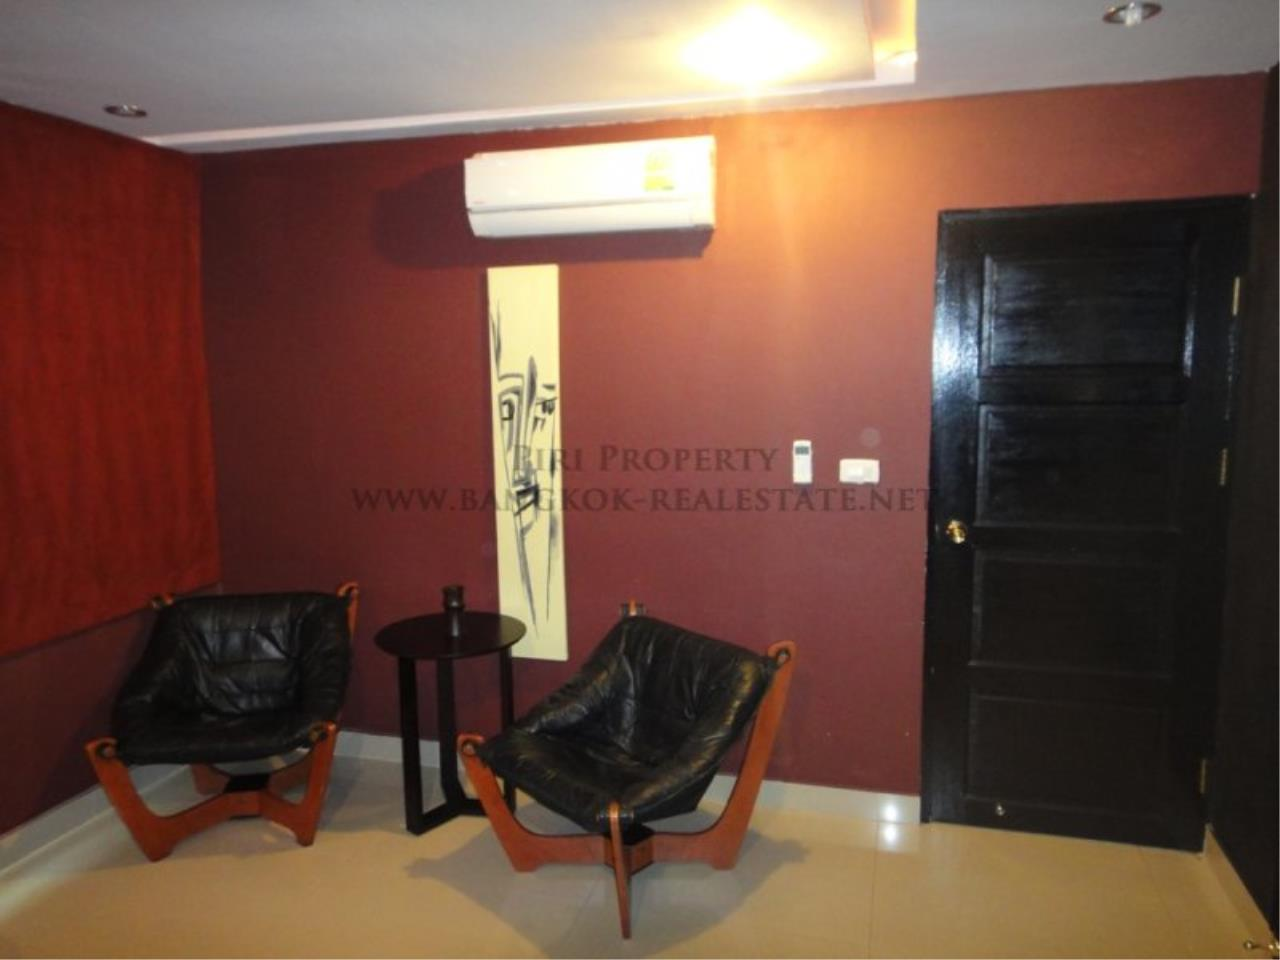 Piri Property Agency's Baan Phrom Phong - 2 Bedroom Condo for Sale - RENOVATED! 10